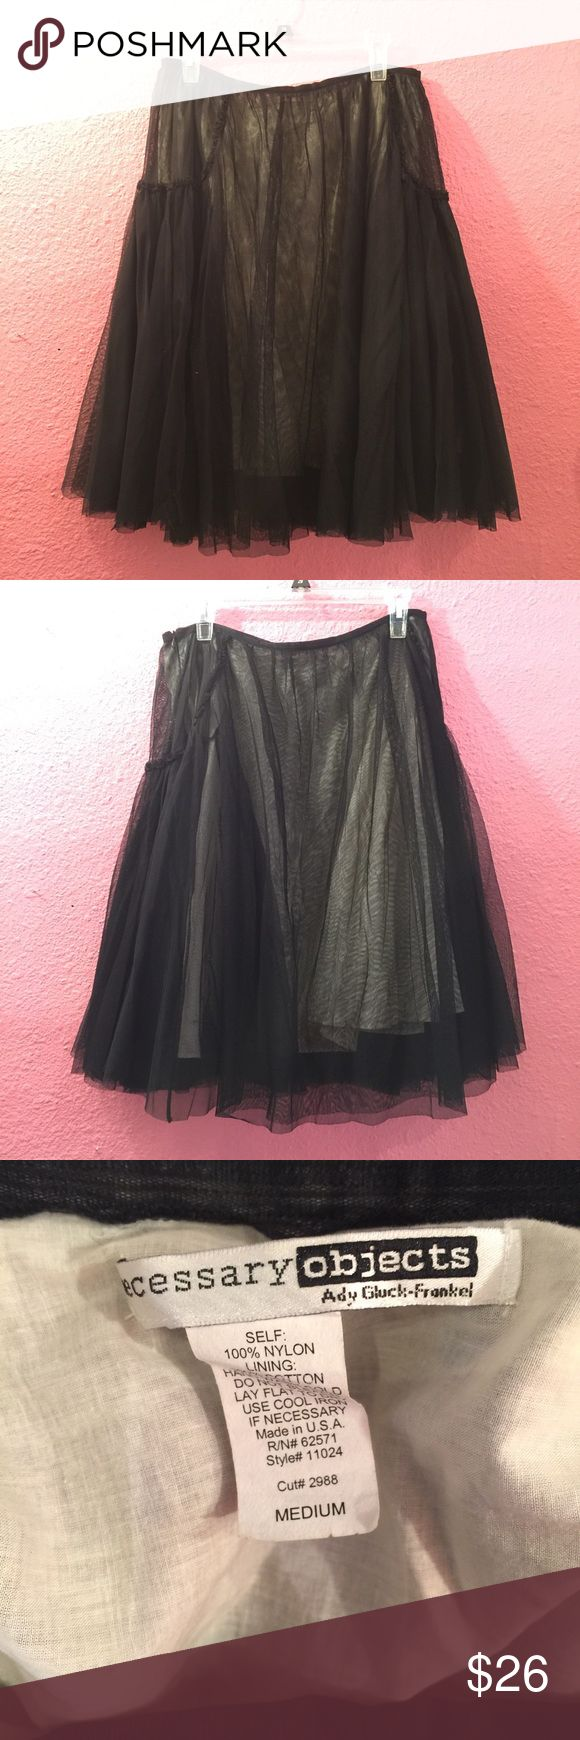 Fun Aline frilly skirt Fun Aline frilly skirt Necessary Objects Skirts A-Line or Full